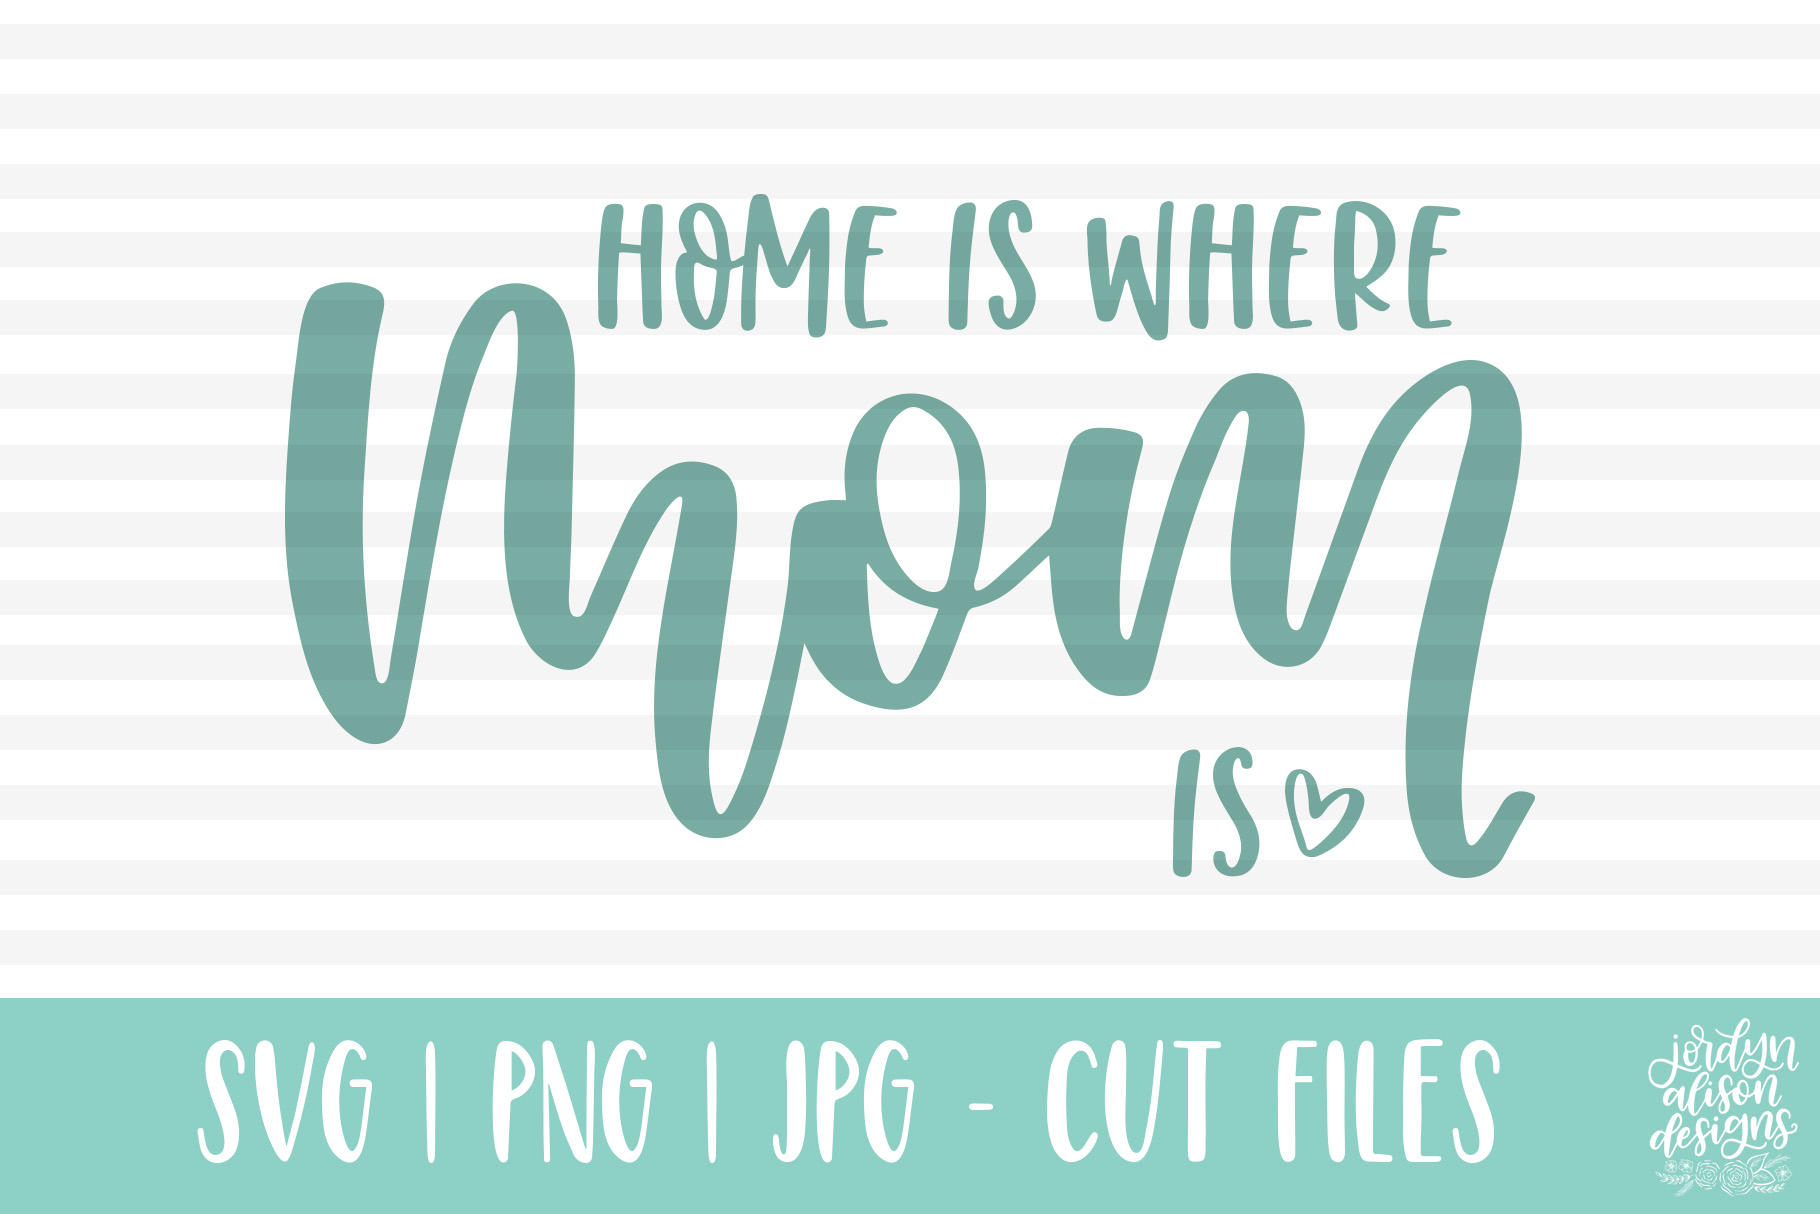 Home Is Where Mom Is, Hand Lettered SVG Cut File example image 2